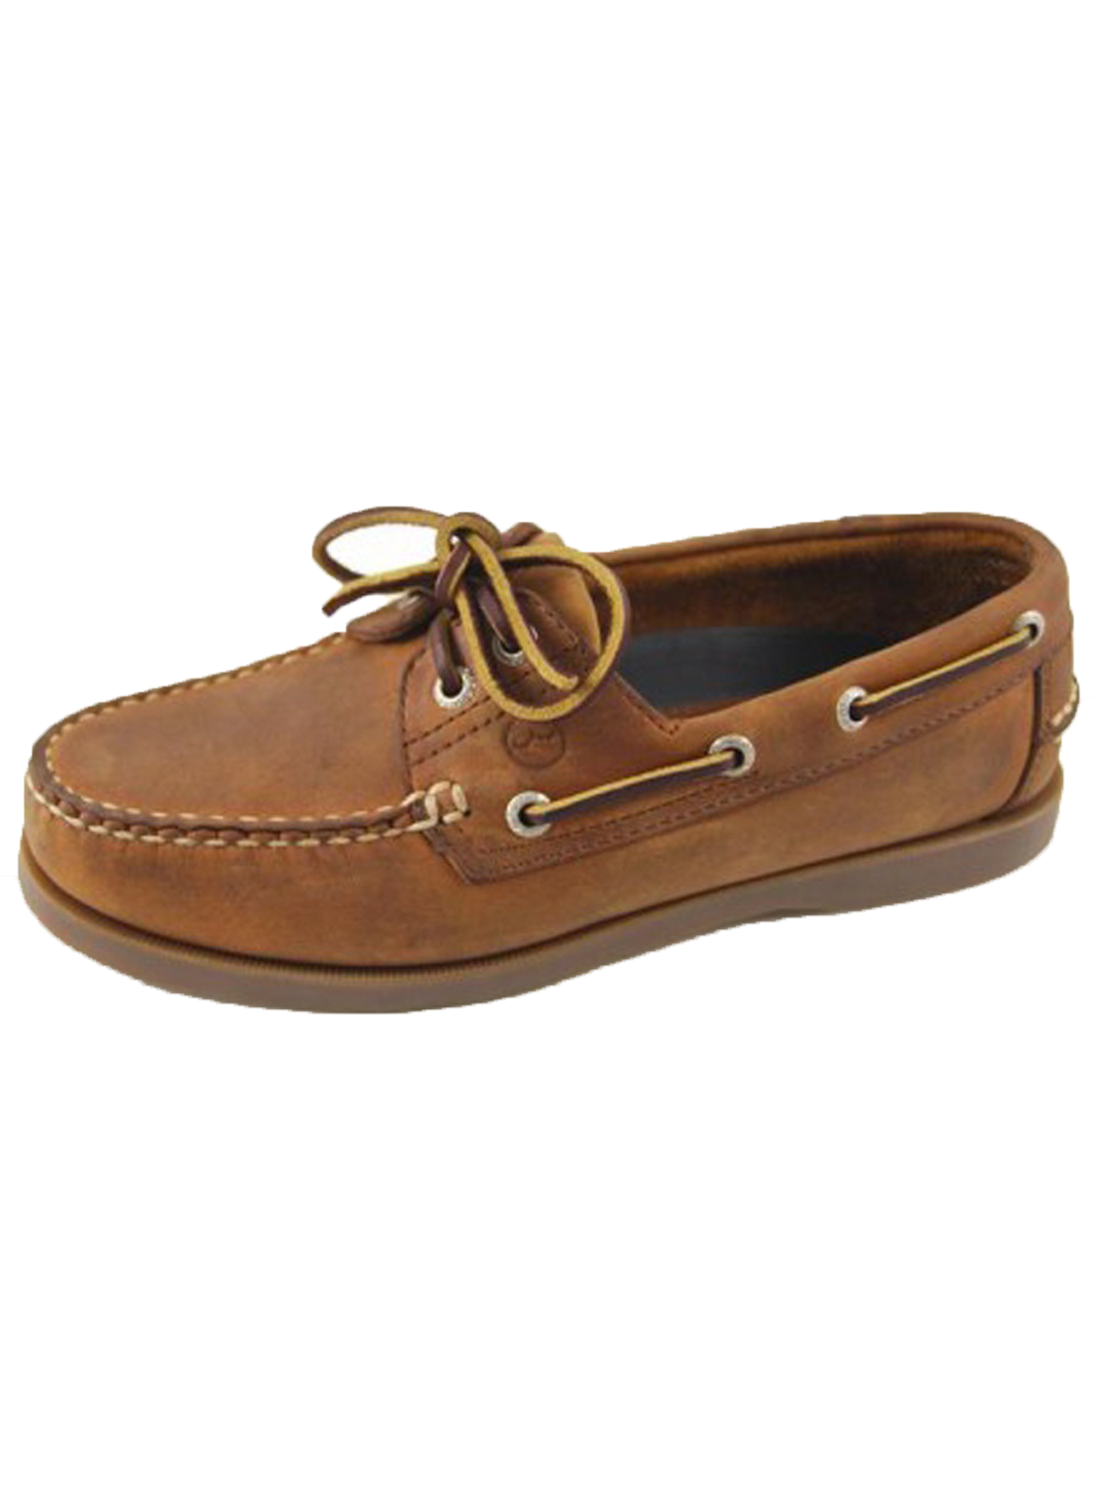 Orca Bay Creek Mens Deck Shoe